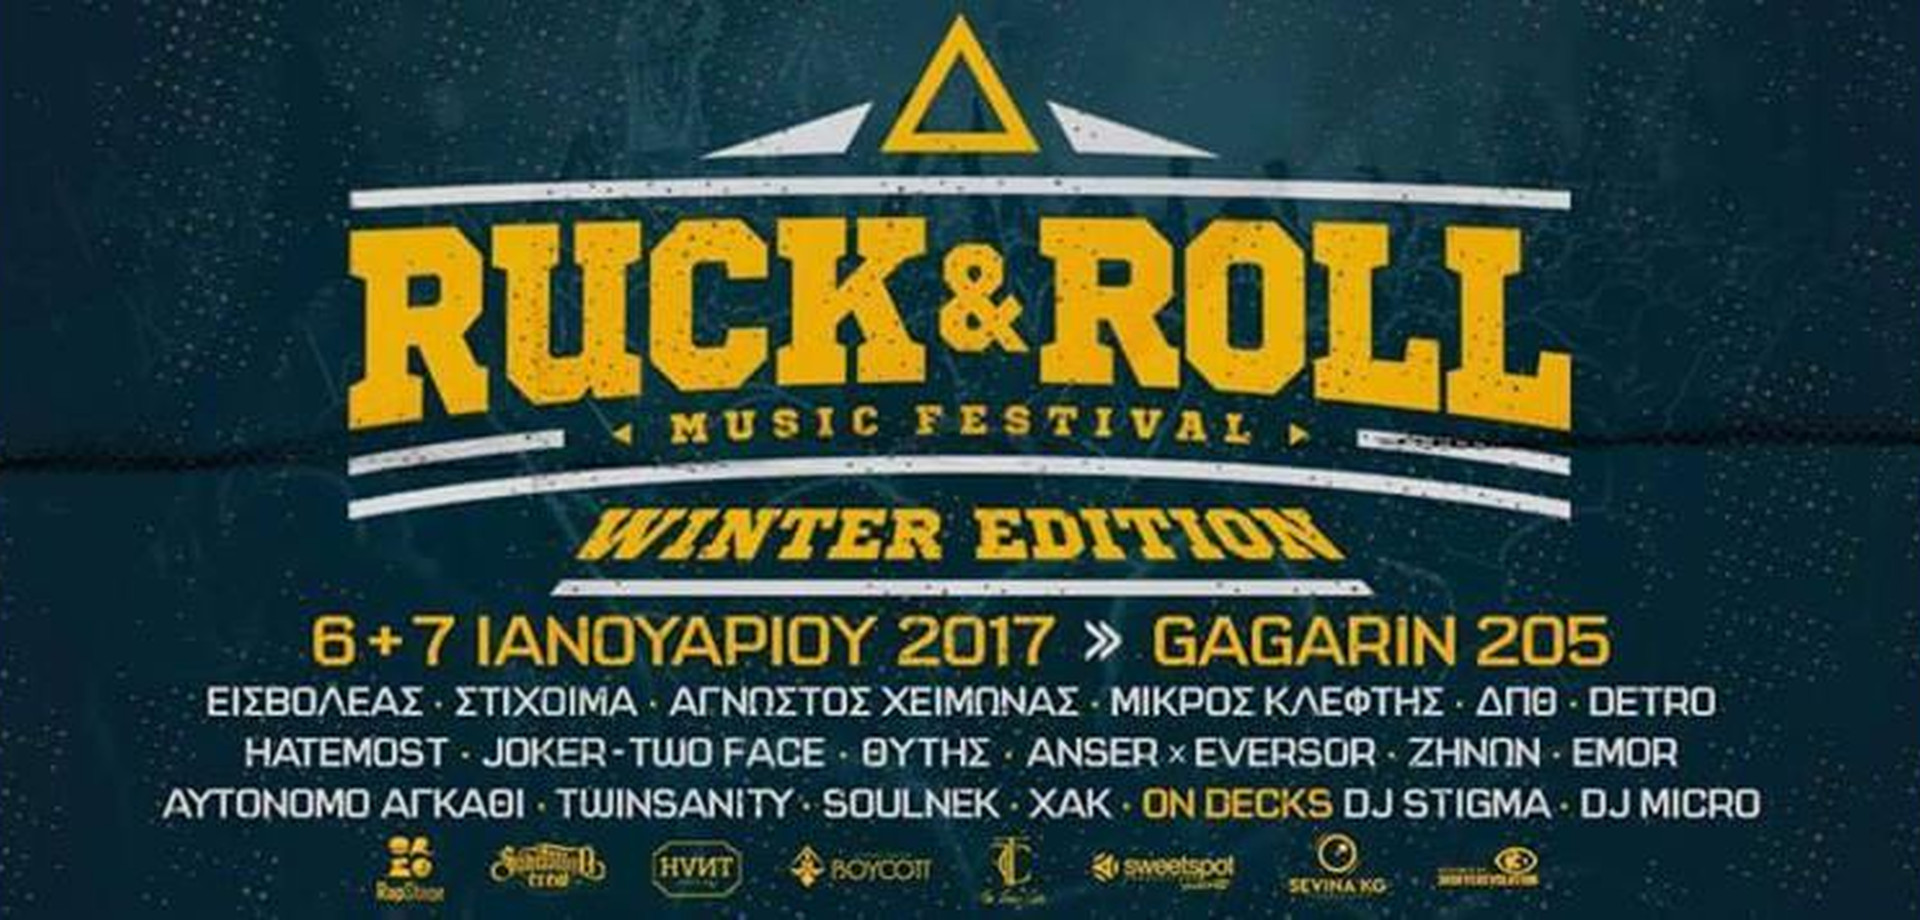 «Ruck n Roll Music Festival Winter Edition» στο Gagarin 205